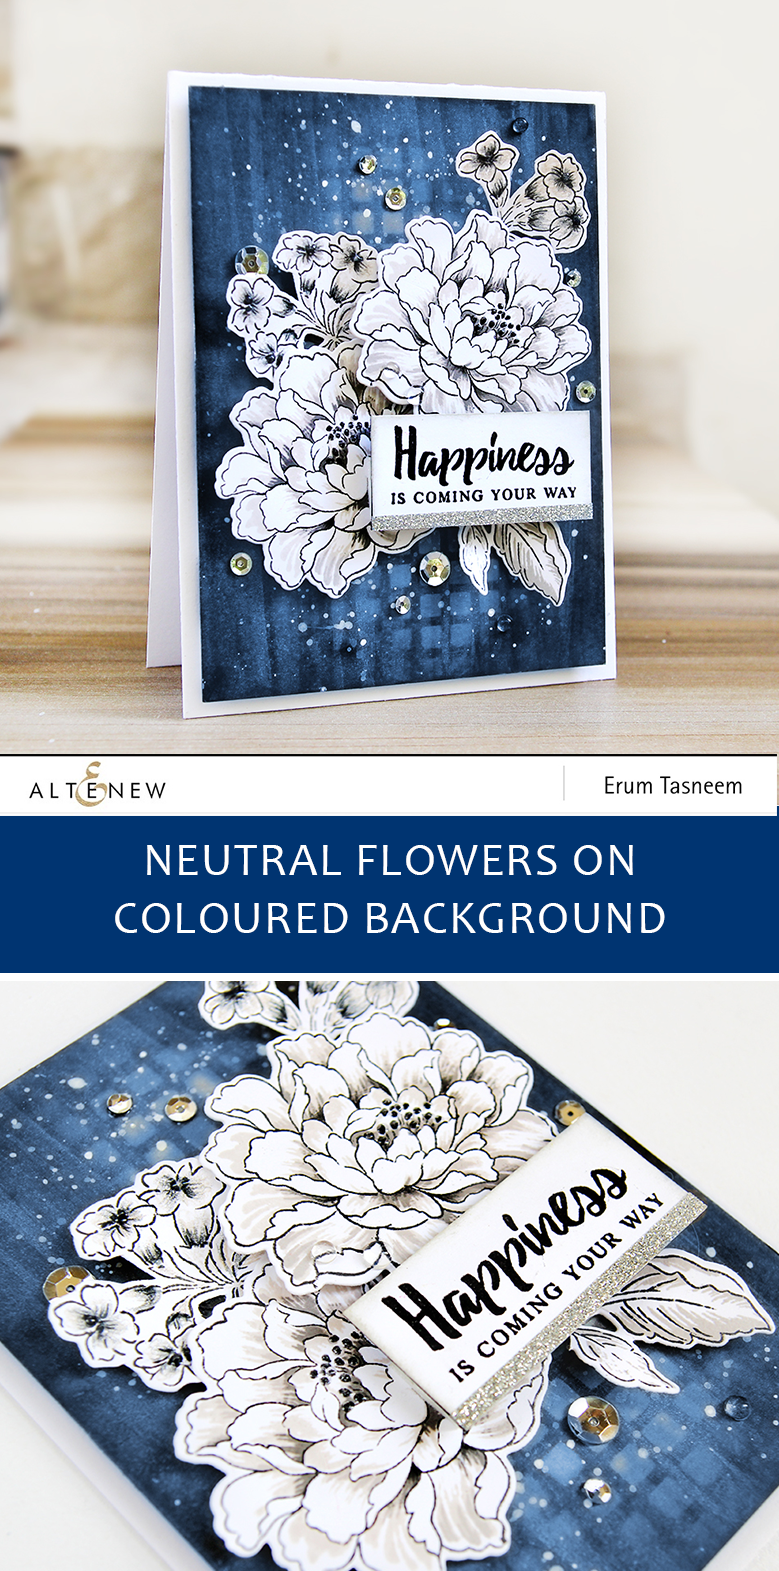 Altenew Build-A-Flower Coral Charm | Neutral flowers on coloured background | Erum Tasneem | @pr0digy0